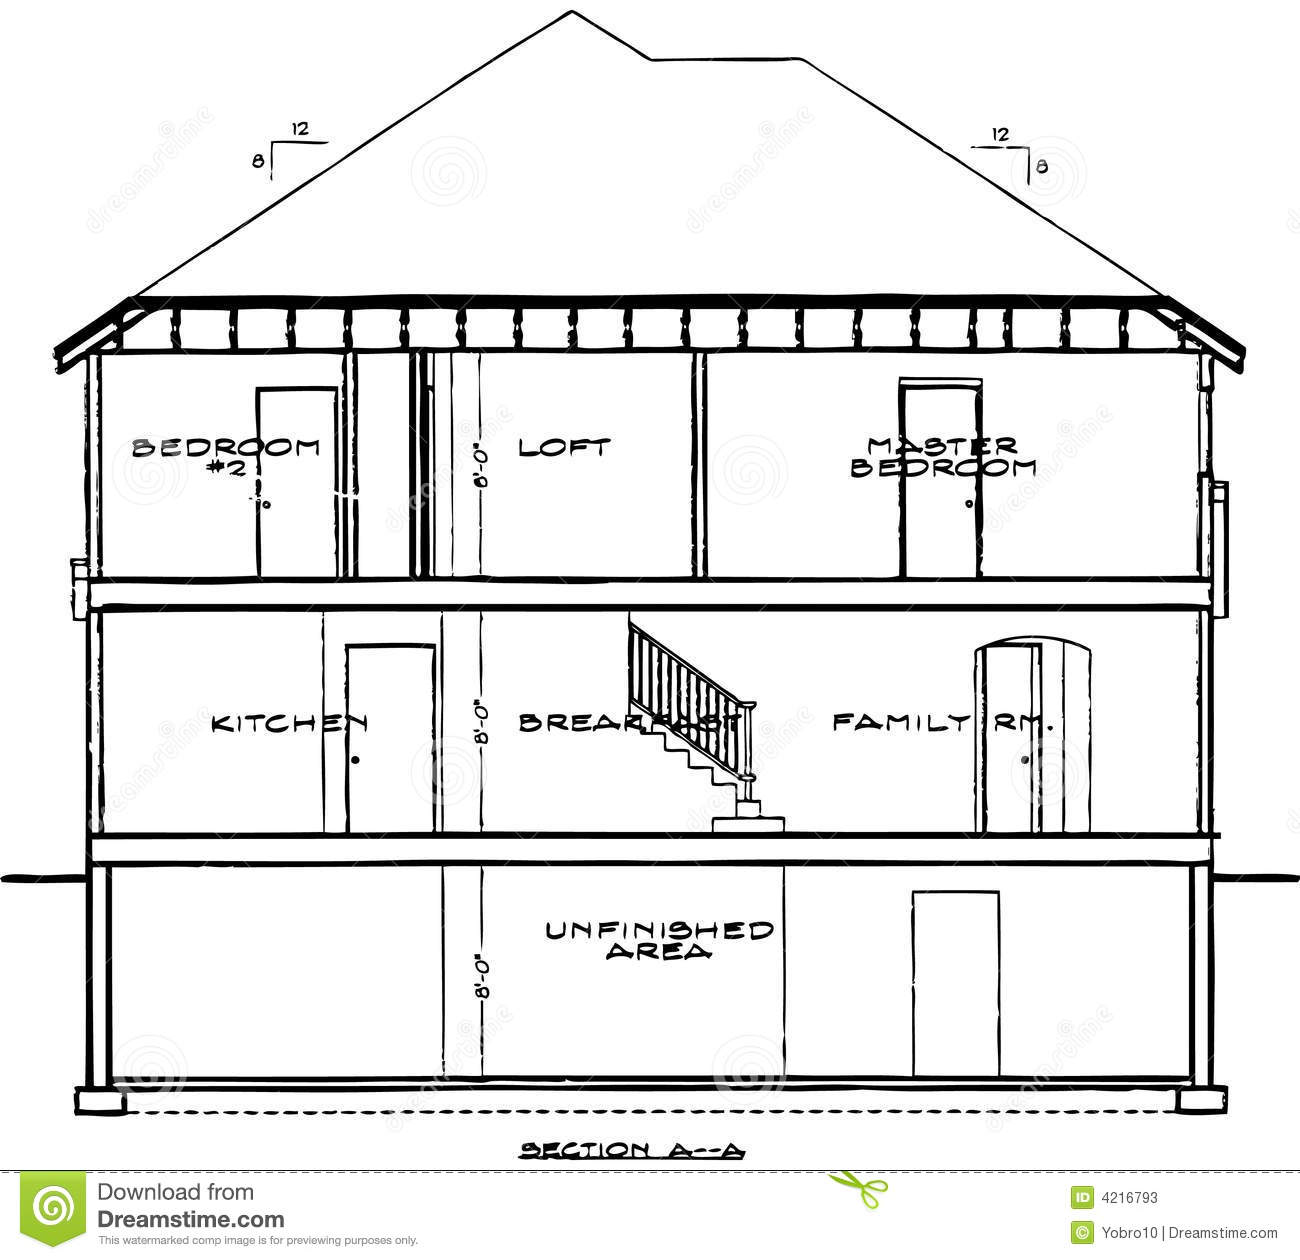 House blueprint stock photos image 4216793 for House blueprint images